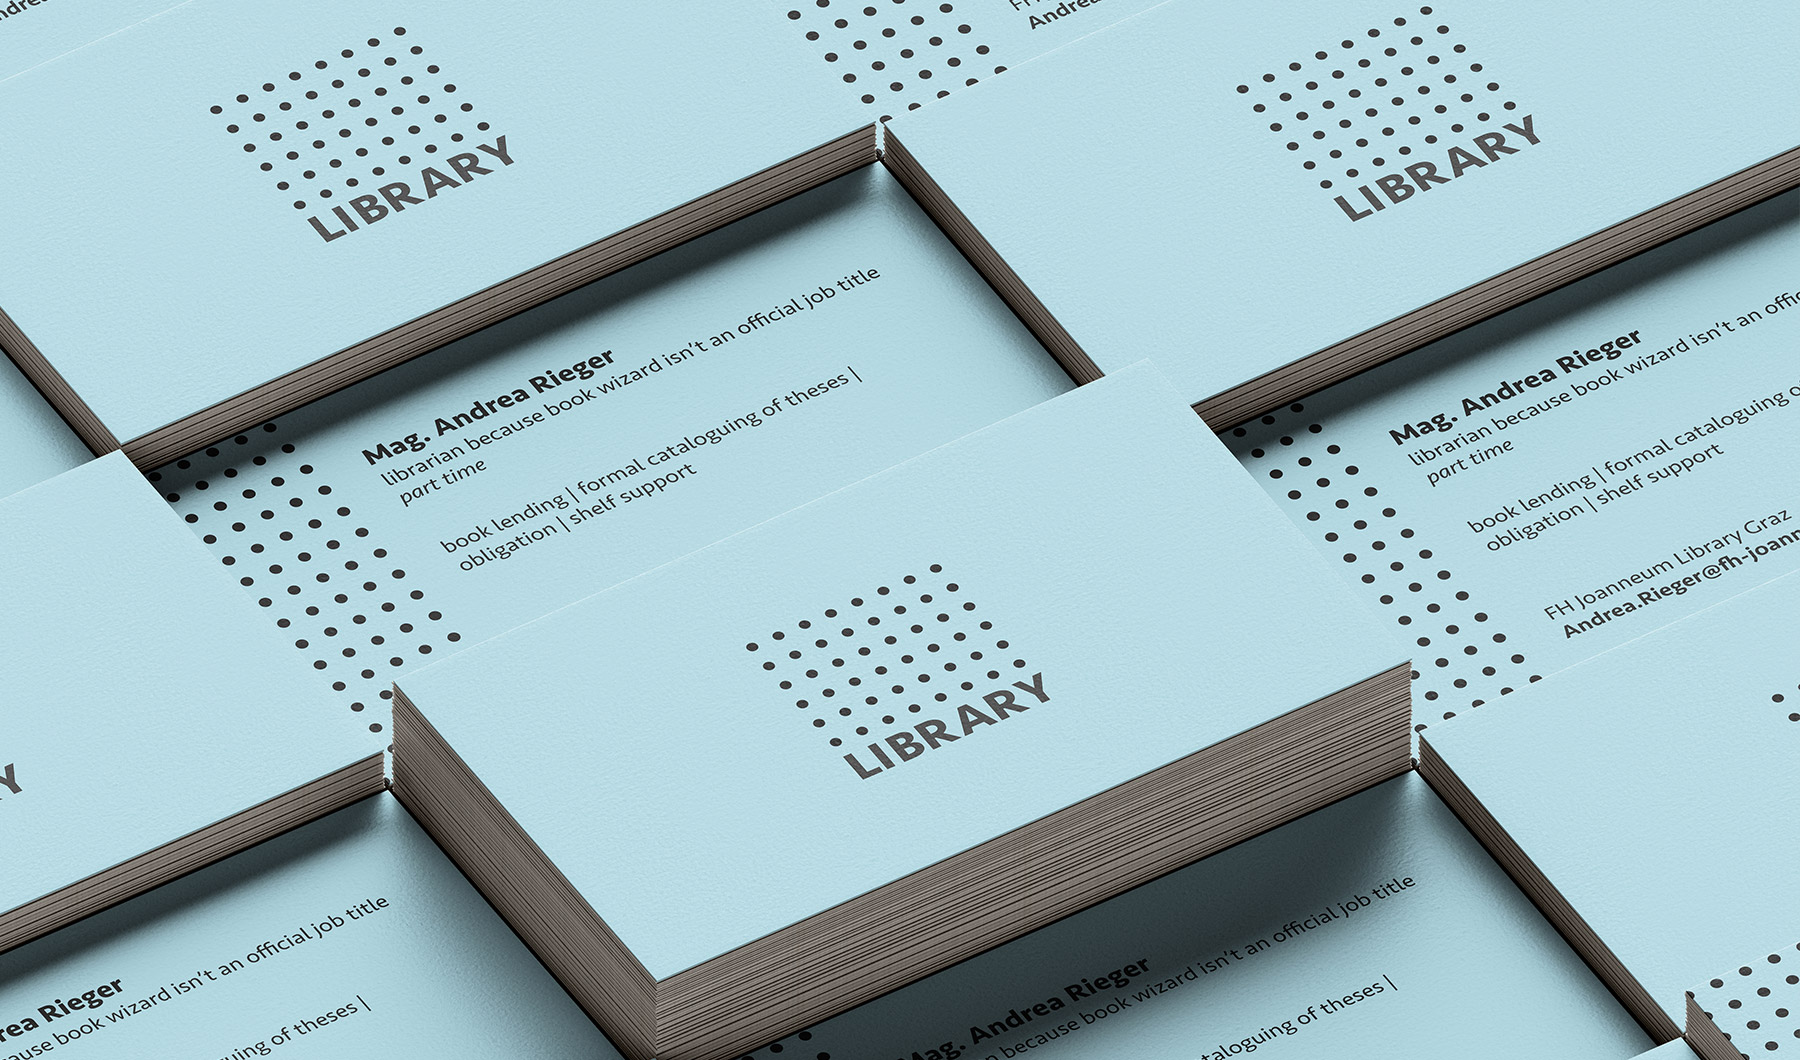 librarby-business-cards